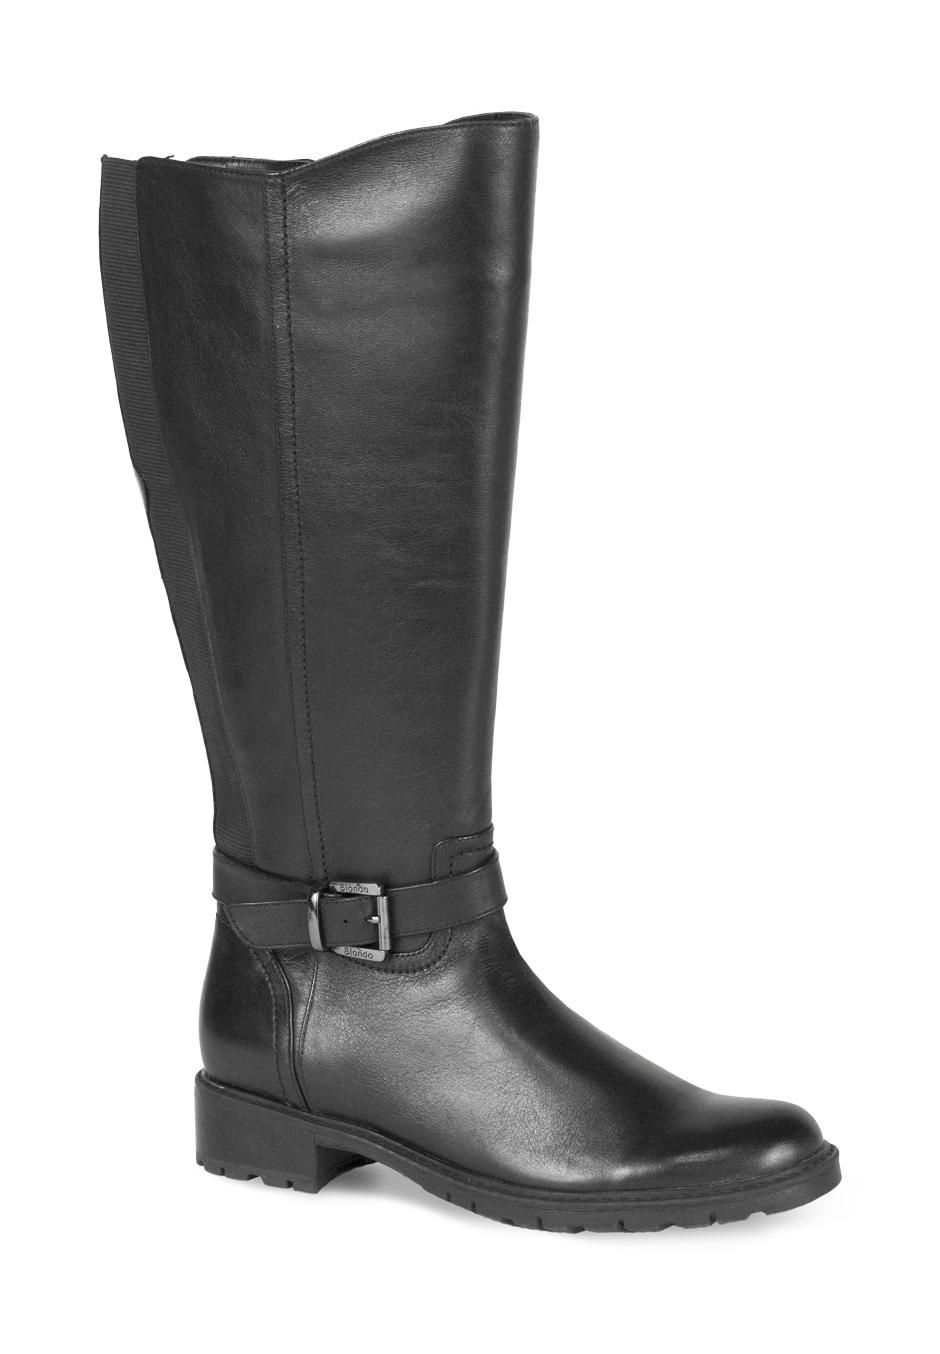 3259ae99d9a Wide calf AND waterproof  Yes